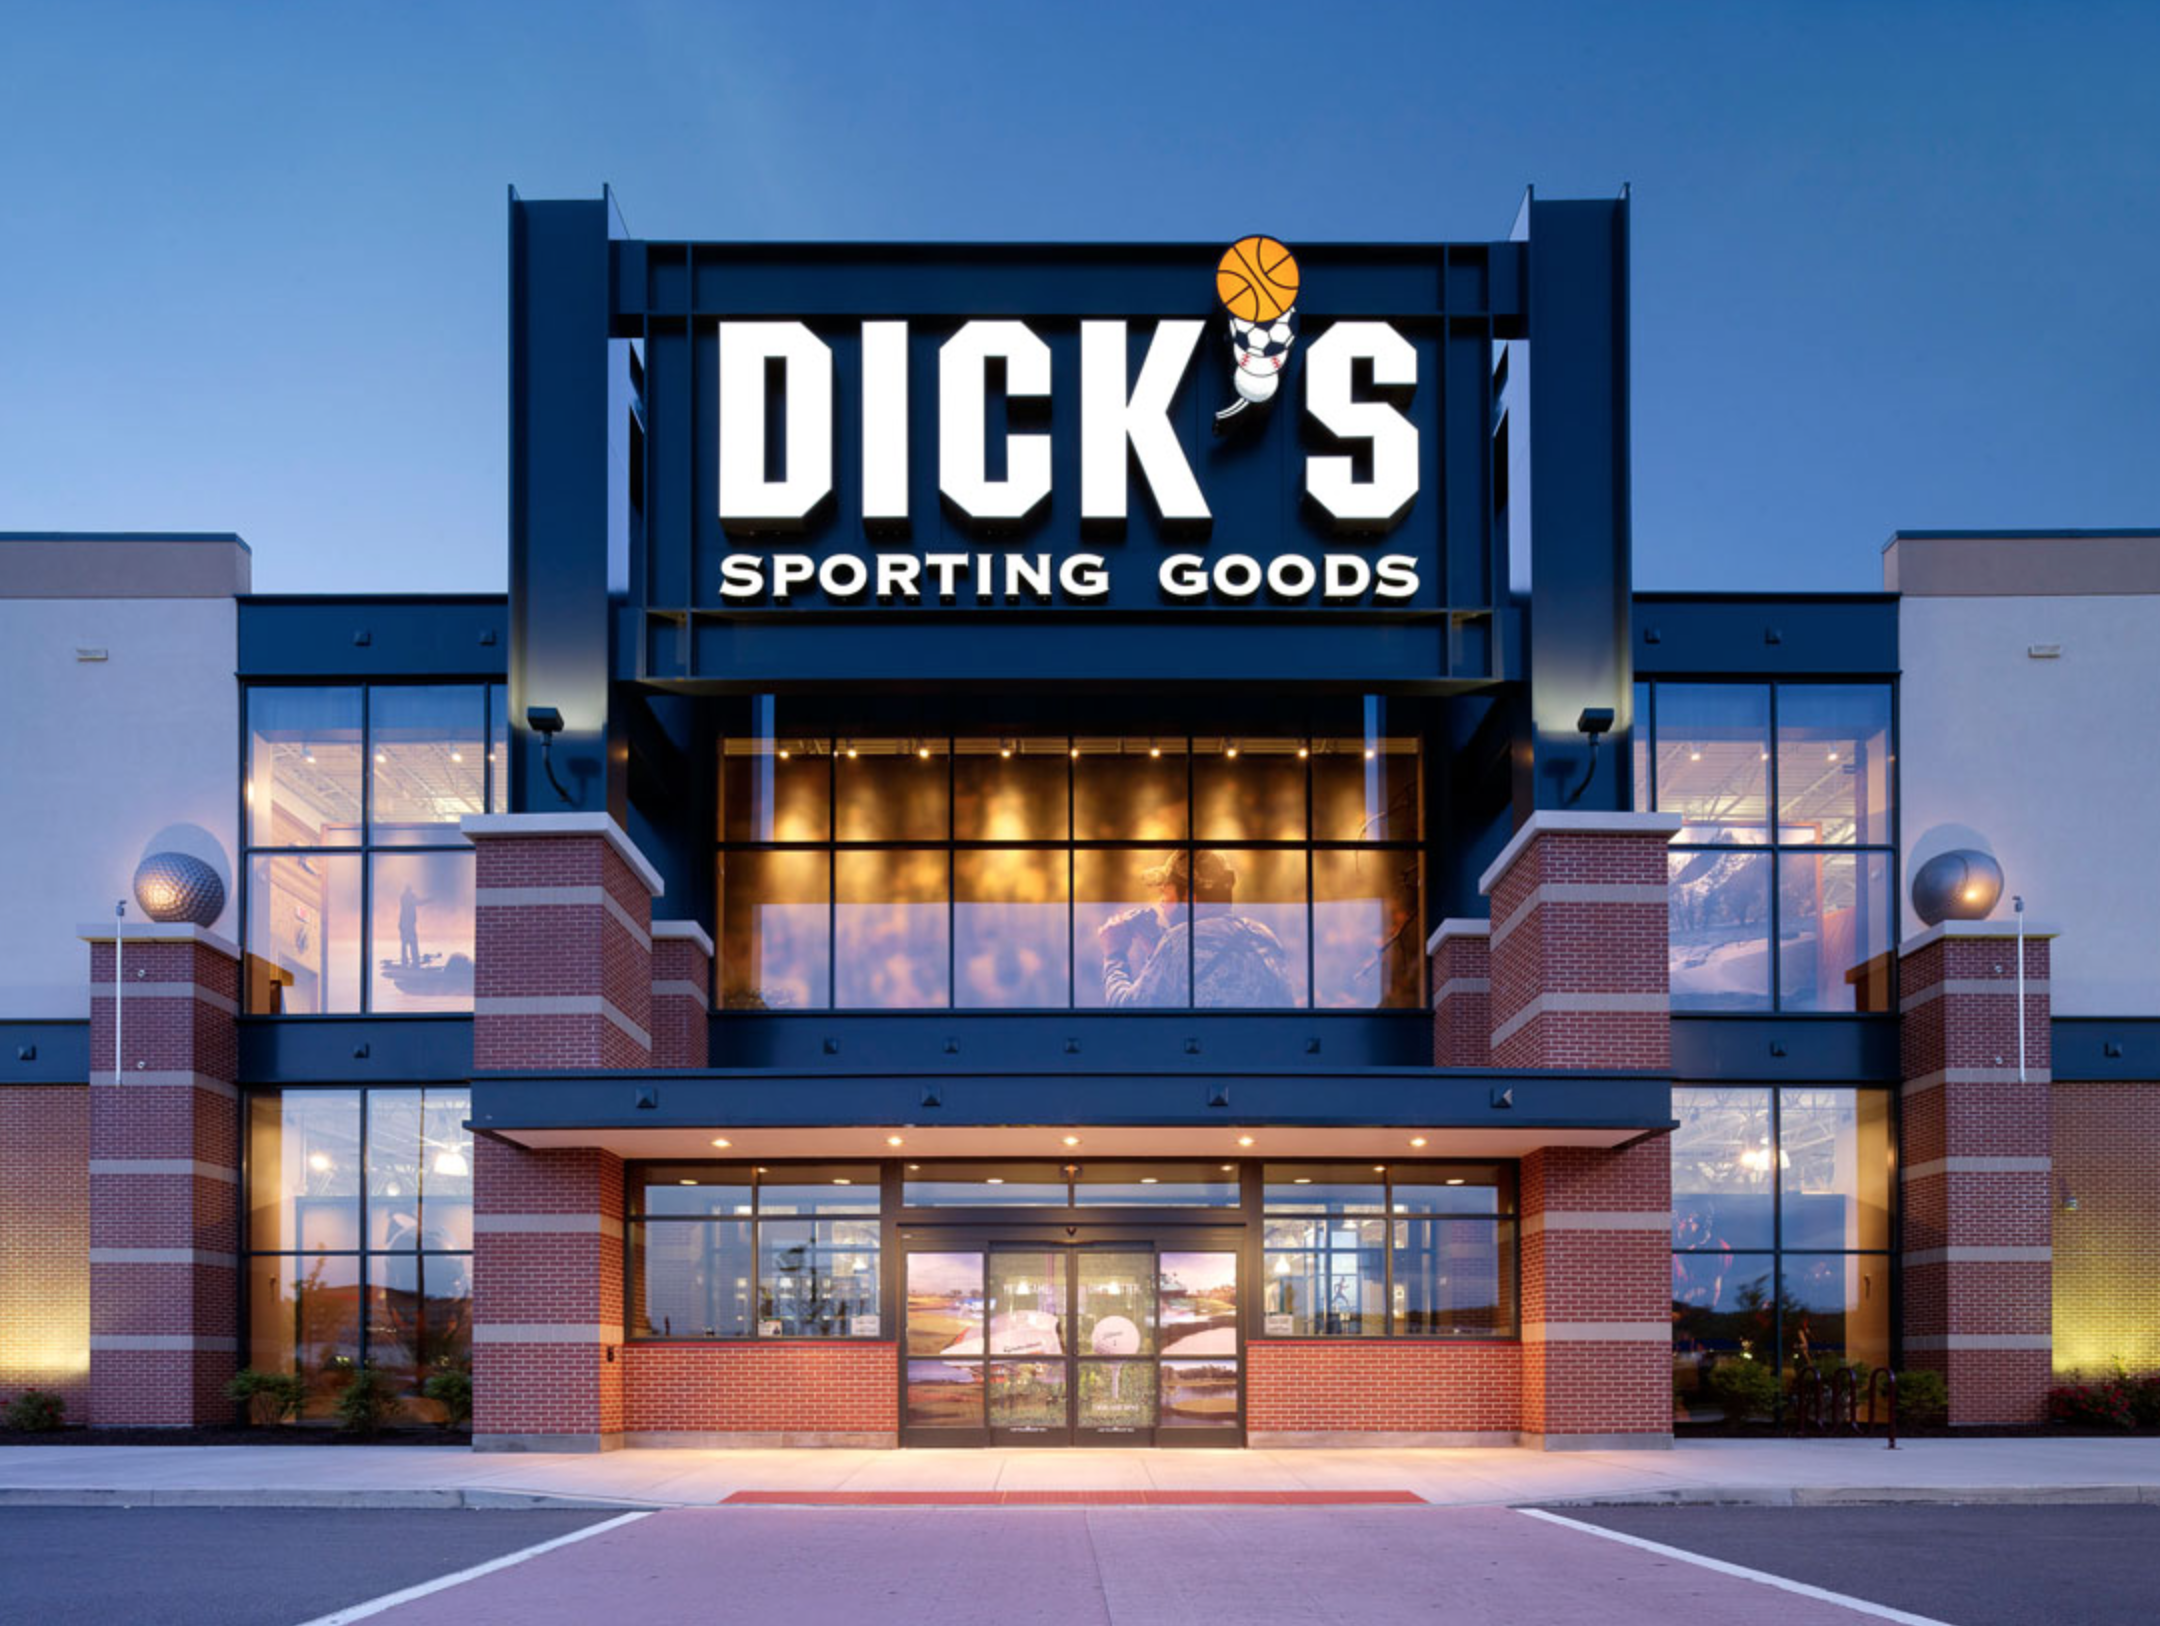 Visit DICKS Sporting Goods and Shop a Wide Selection of Sports Gear Equipment Apparel and Footwear! Get the Top Brands at Competitive Prices